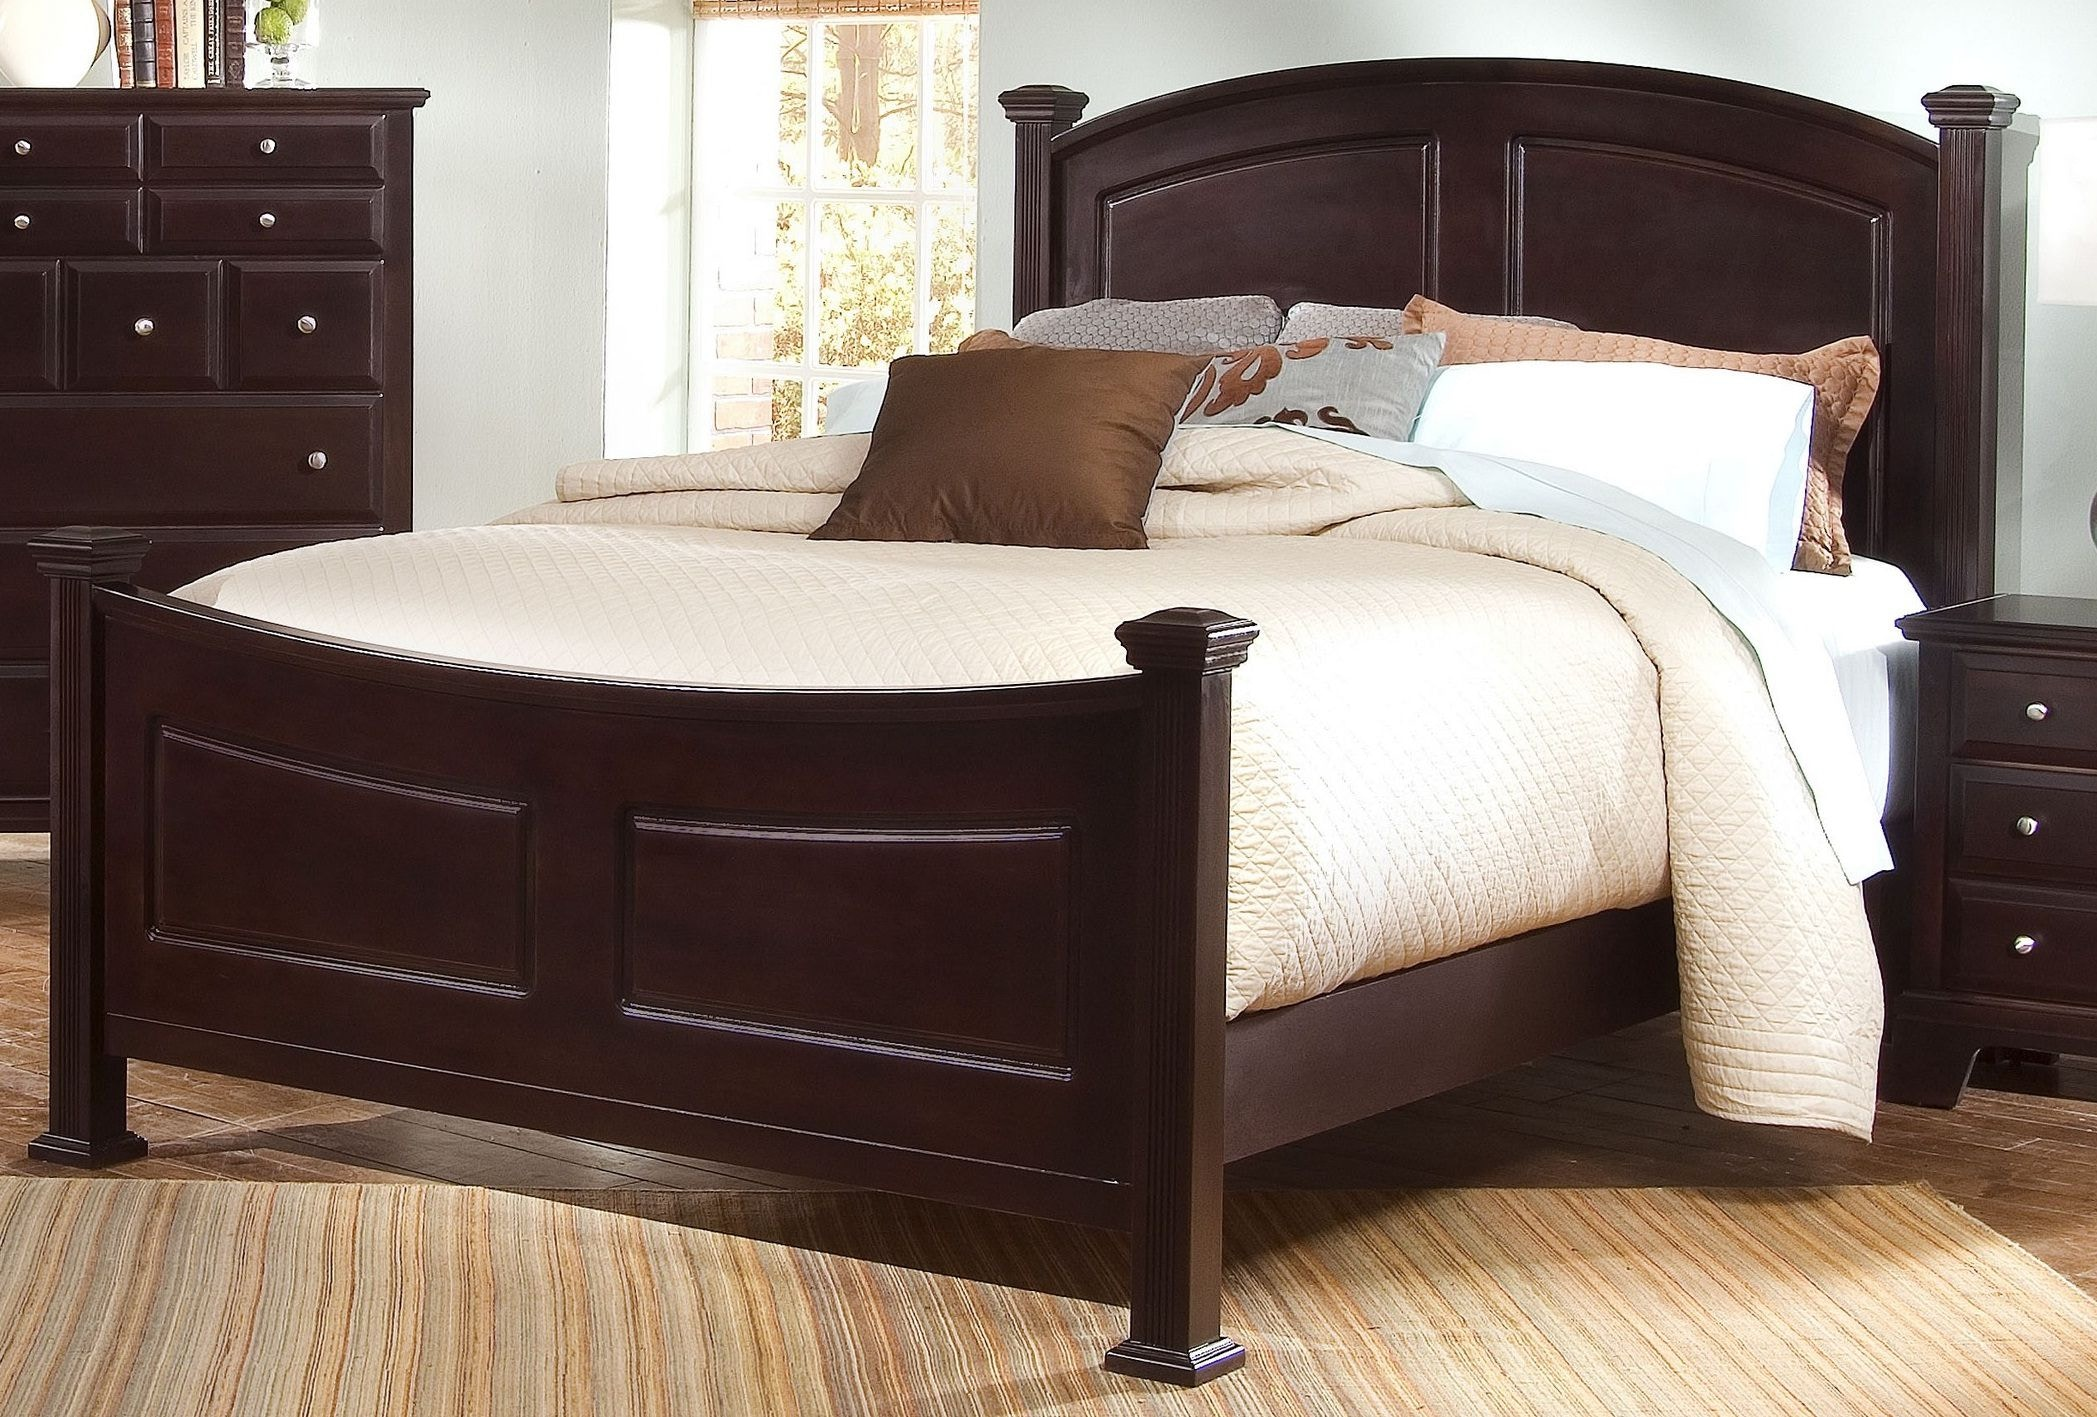 Vaughan Bassett Furniture Company Bedroom Panel Headboard